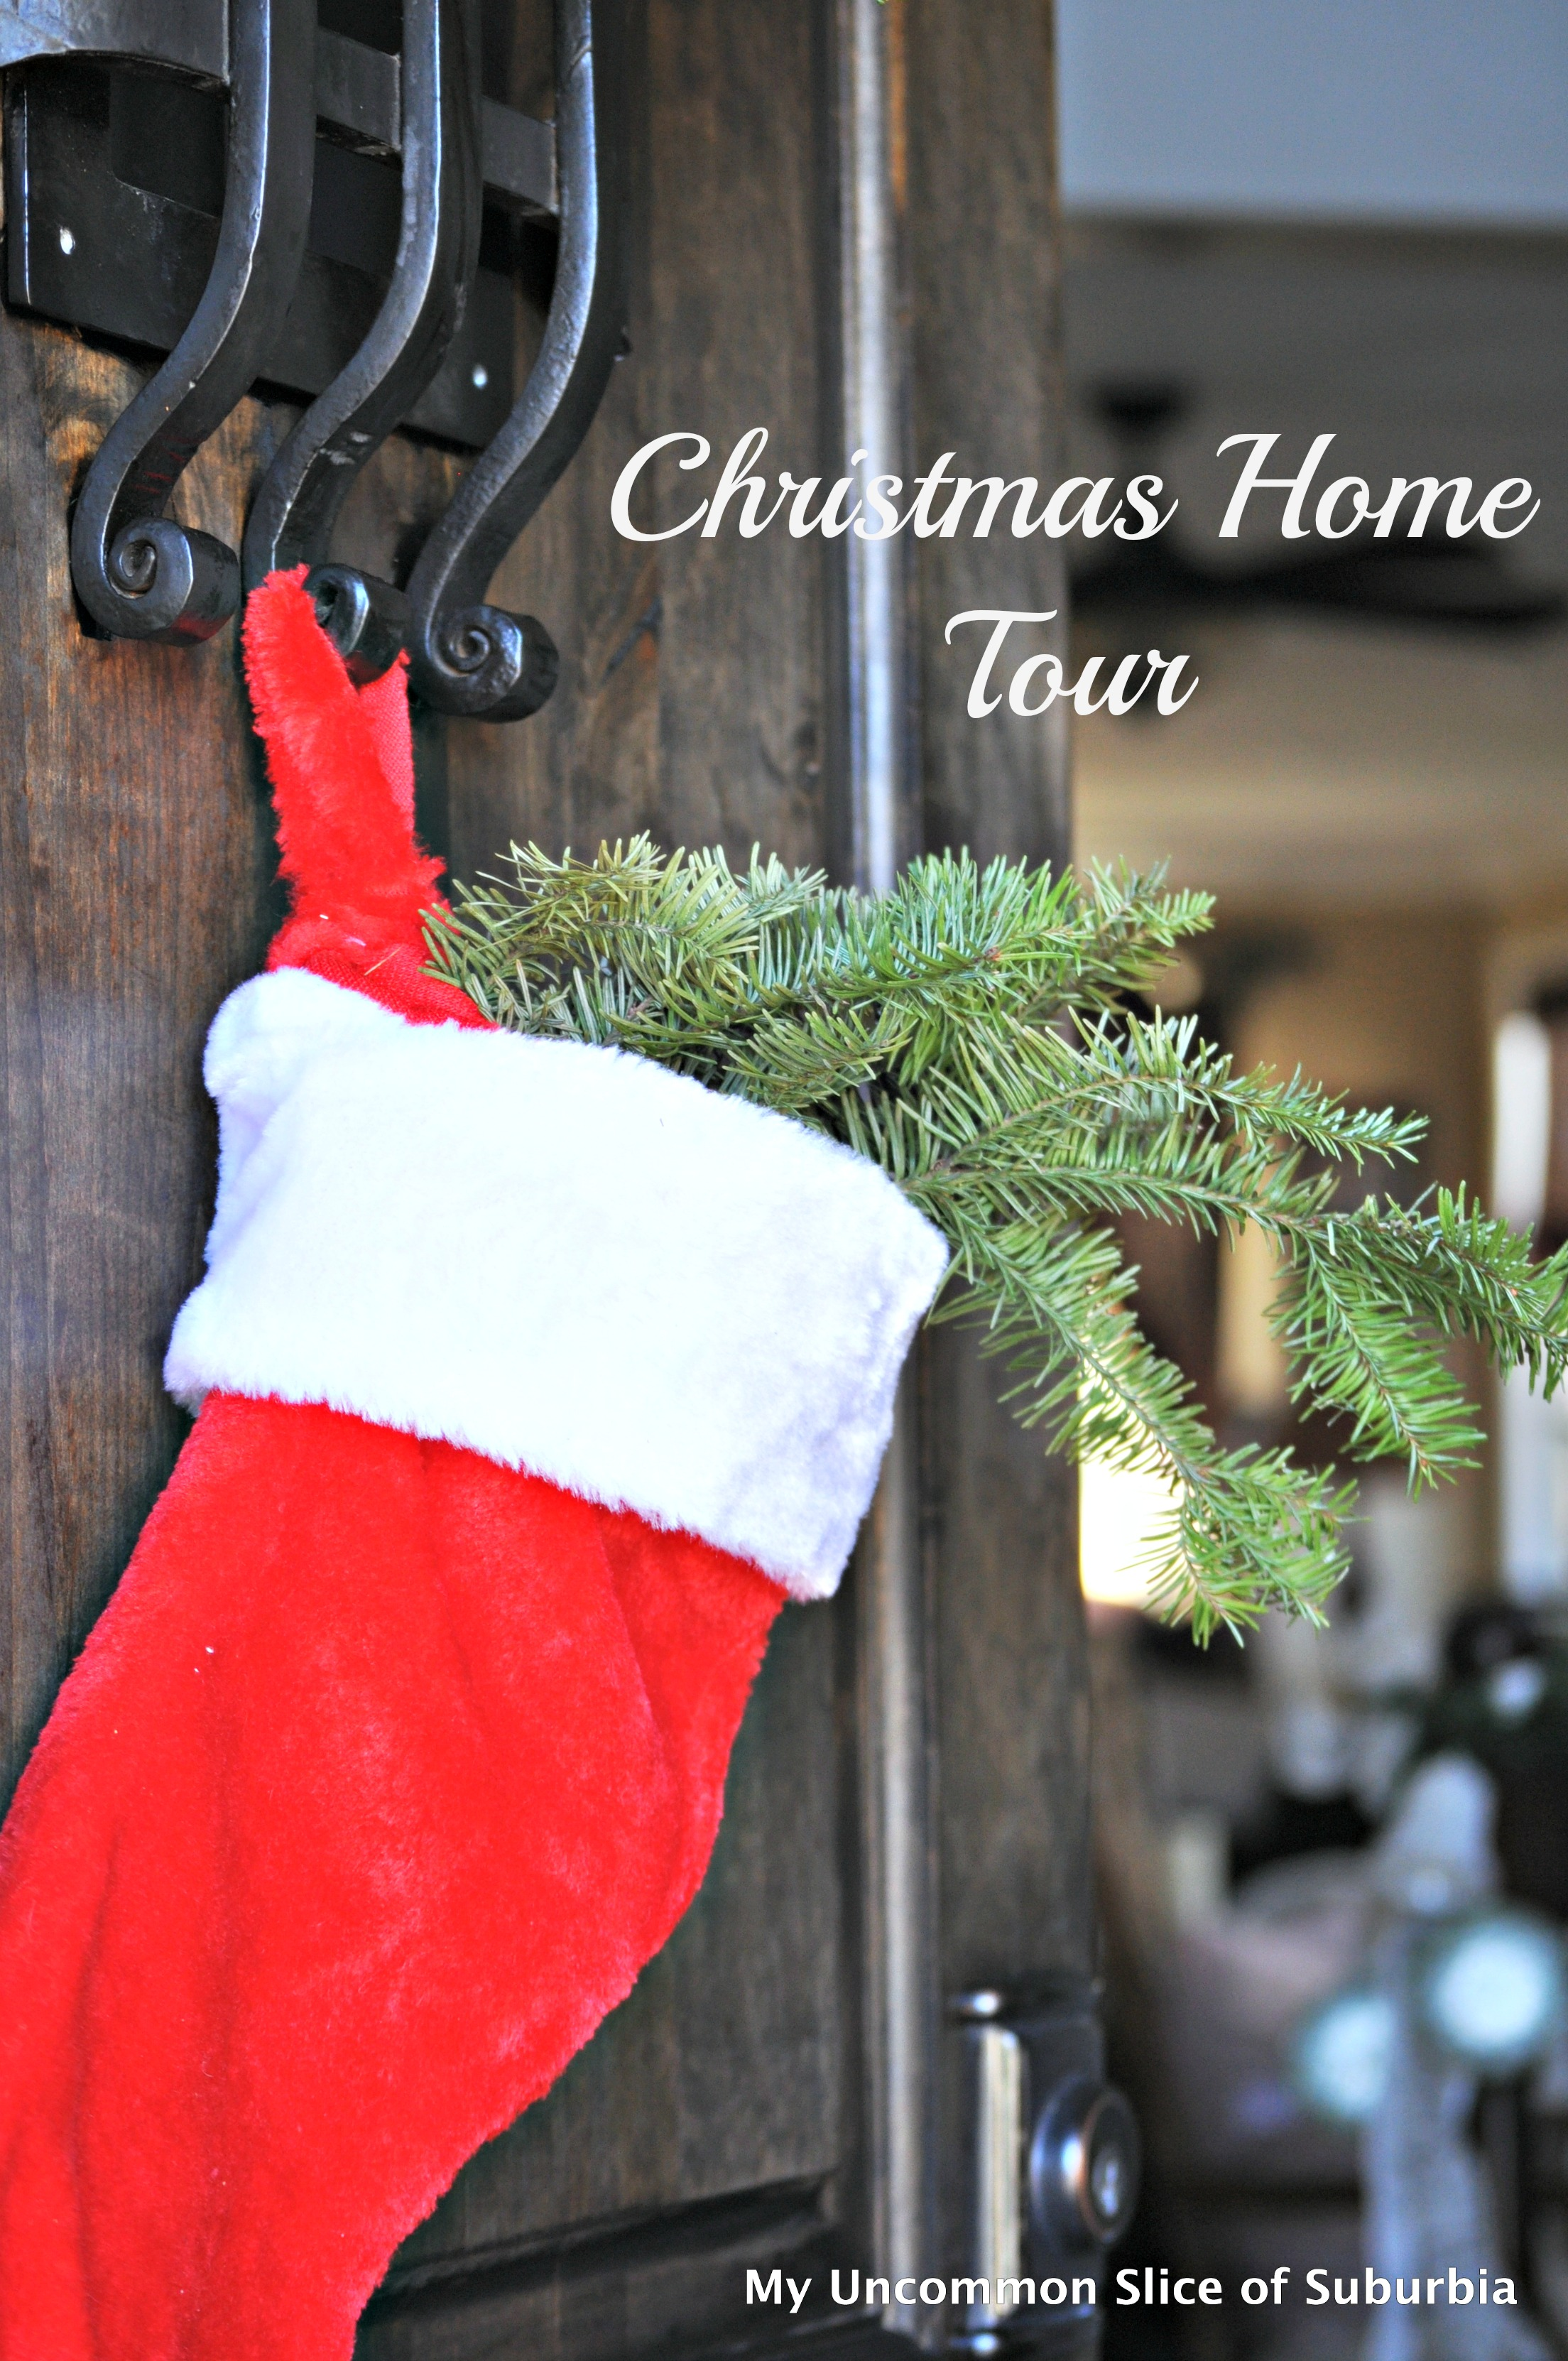 Christmas House Tour Part II - My Uncommon Slice of Suburbia